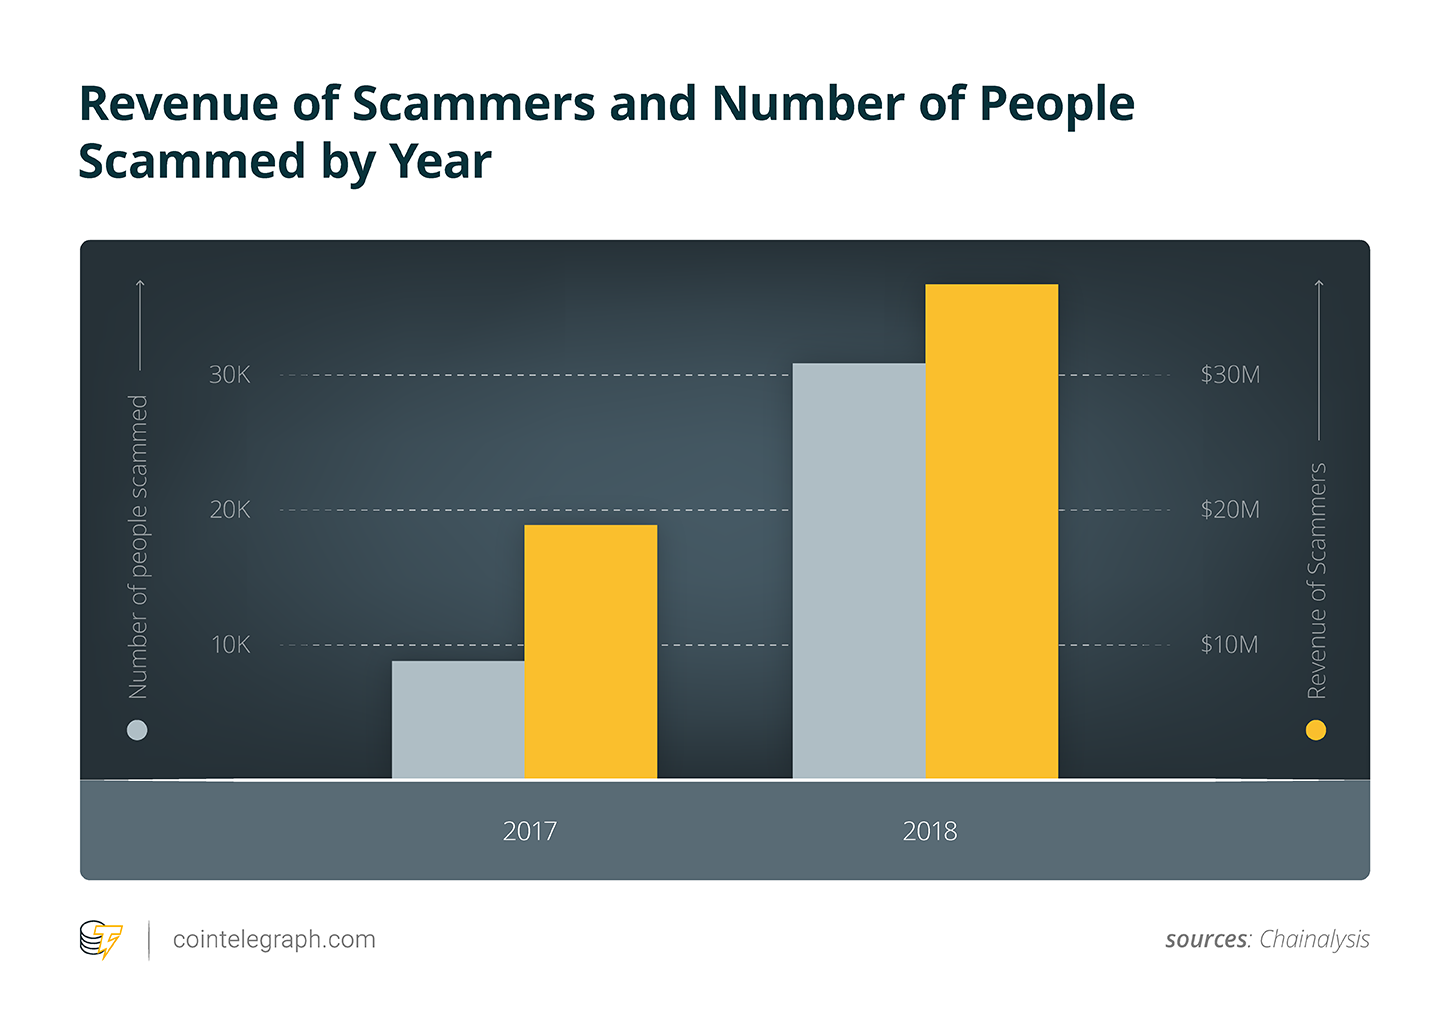 Revenue of Scammers and Number of People Scammed by Year